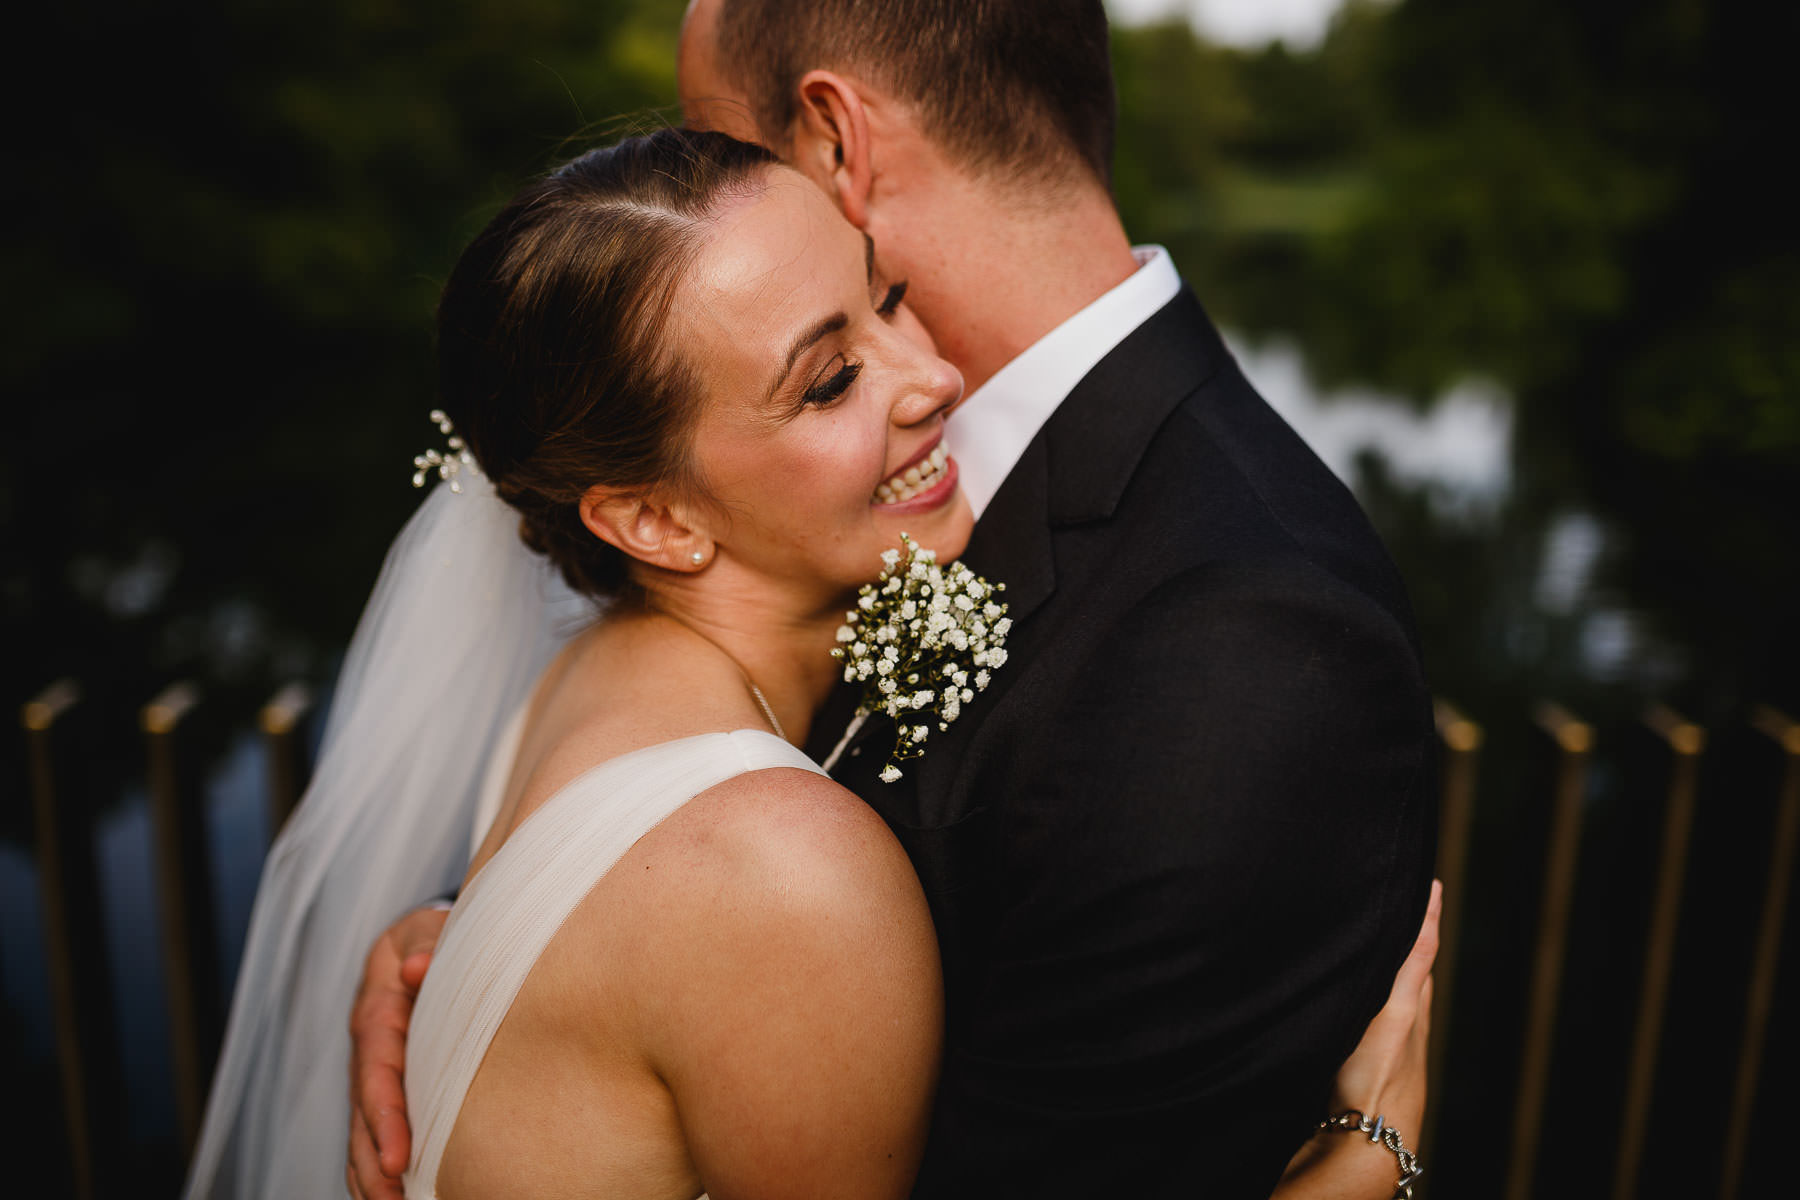 kew gardens wedding photography astra duncan46